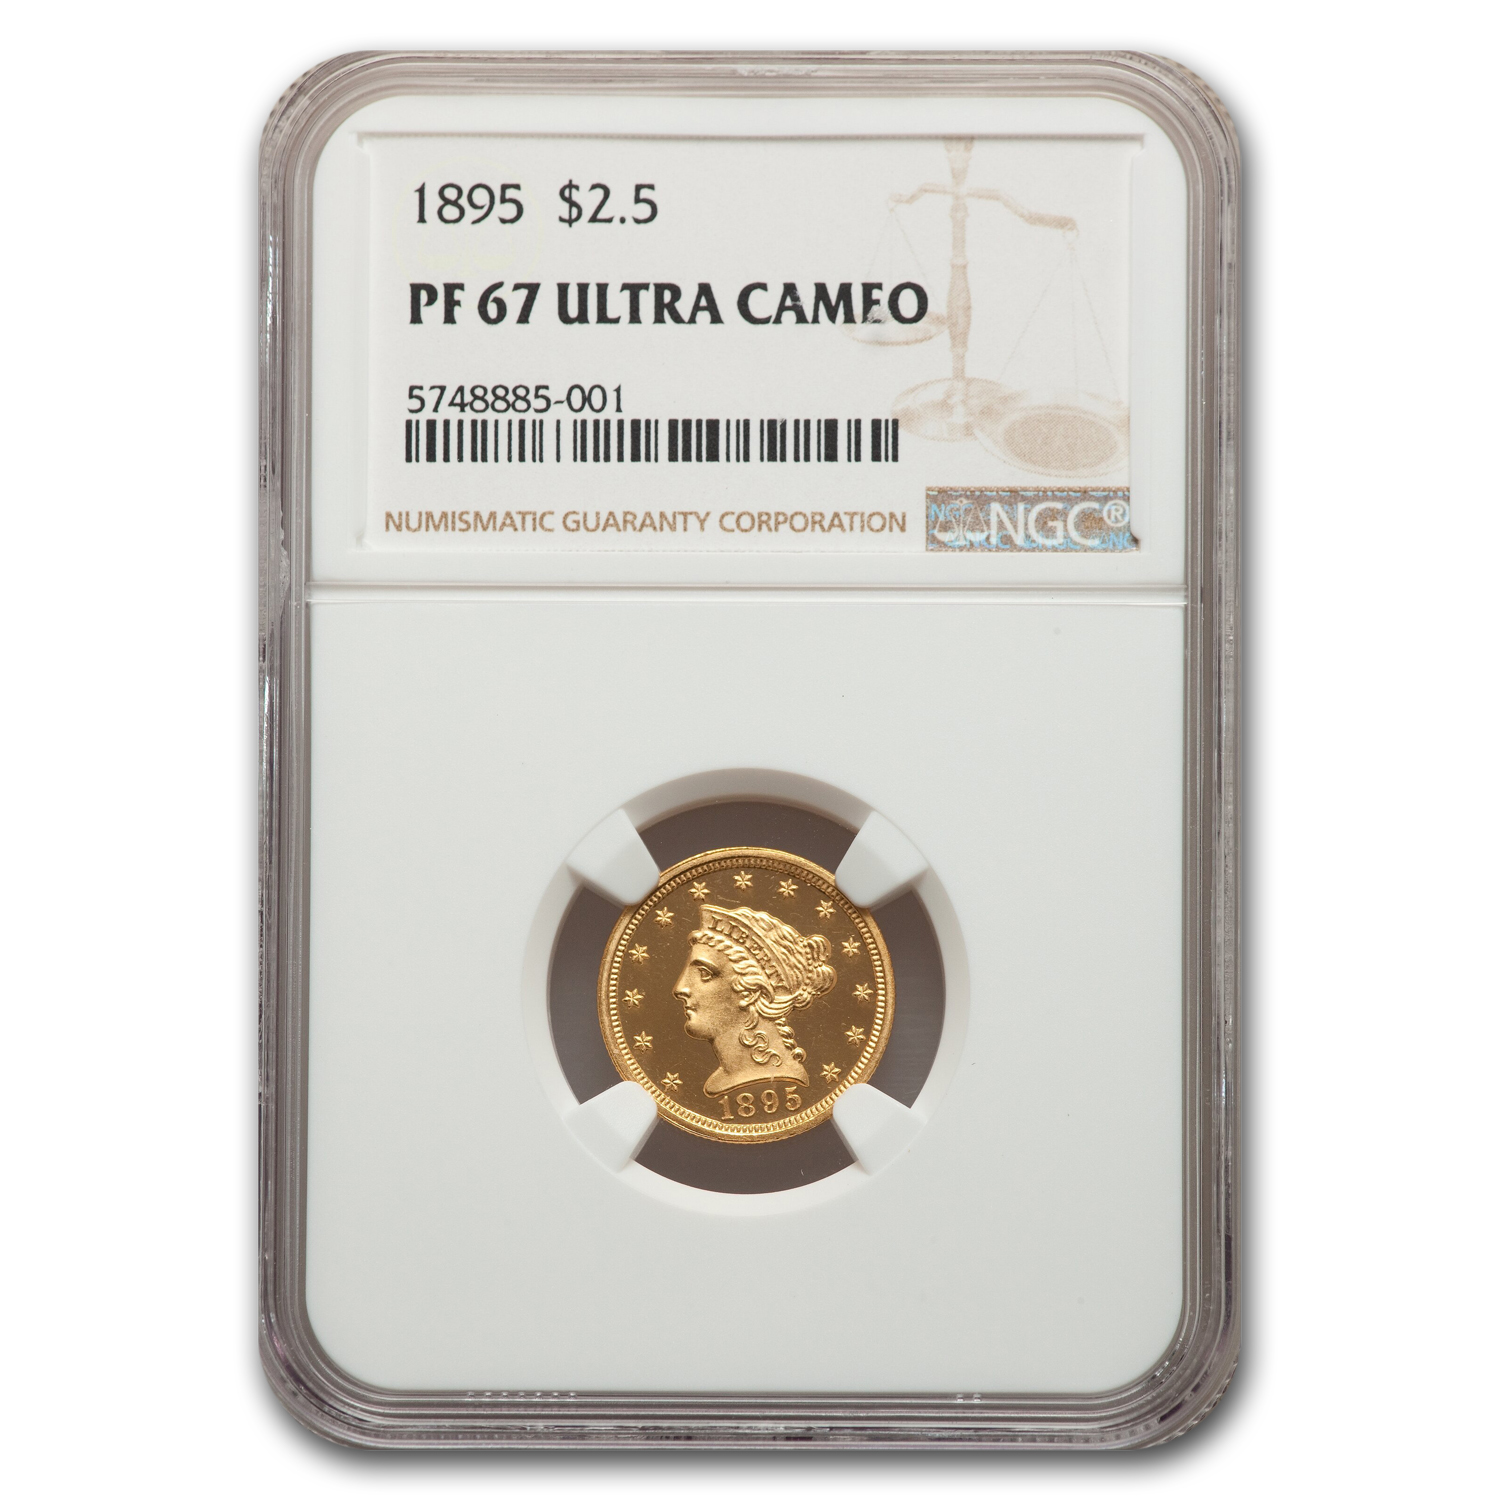 1895 $2.50 Liberty Head Quarter Eagle PF-67 Ultra Cameo NGC